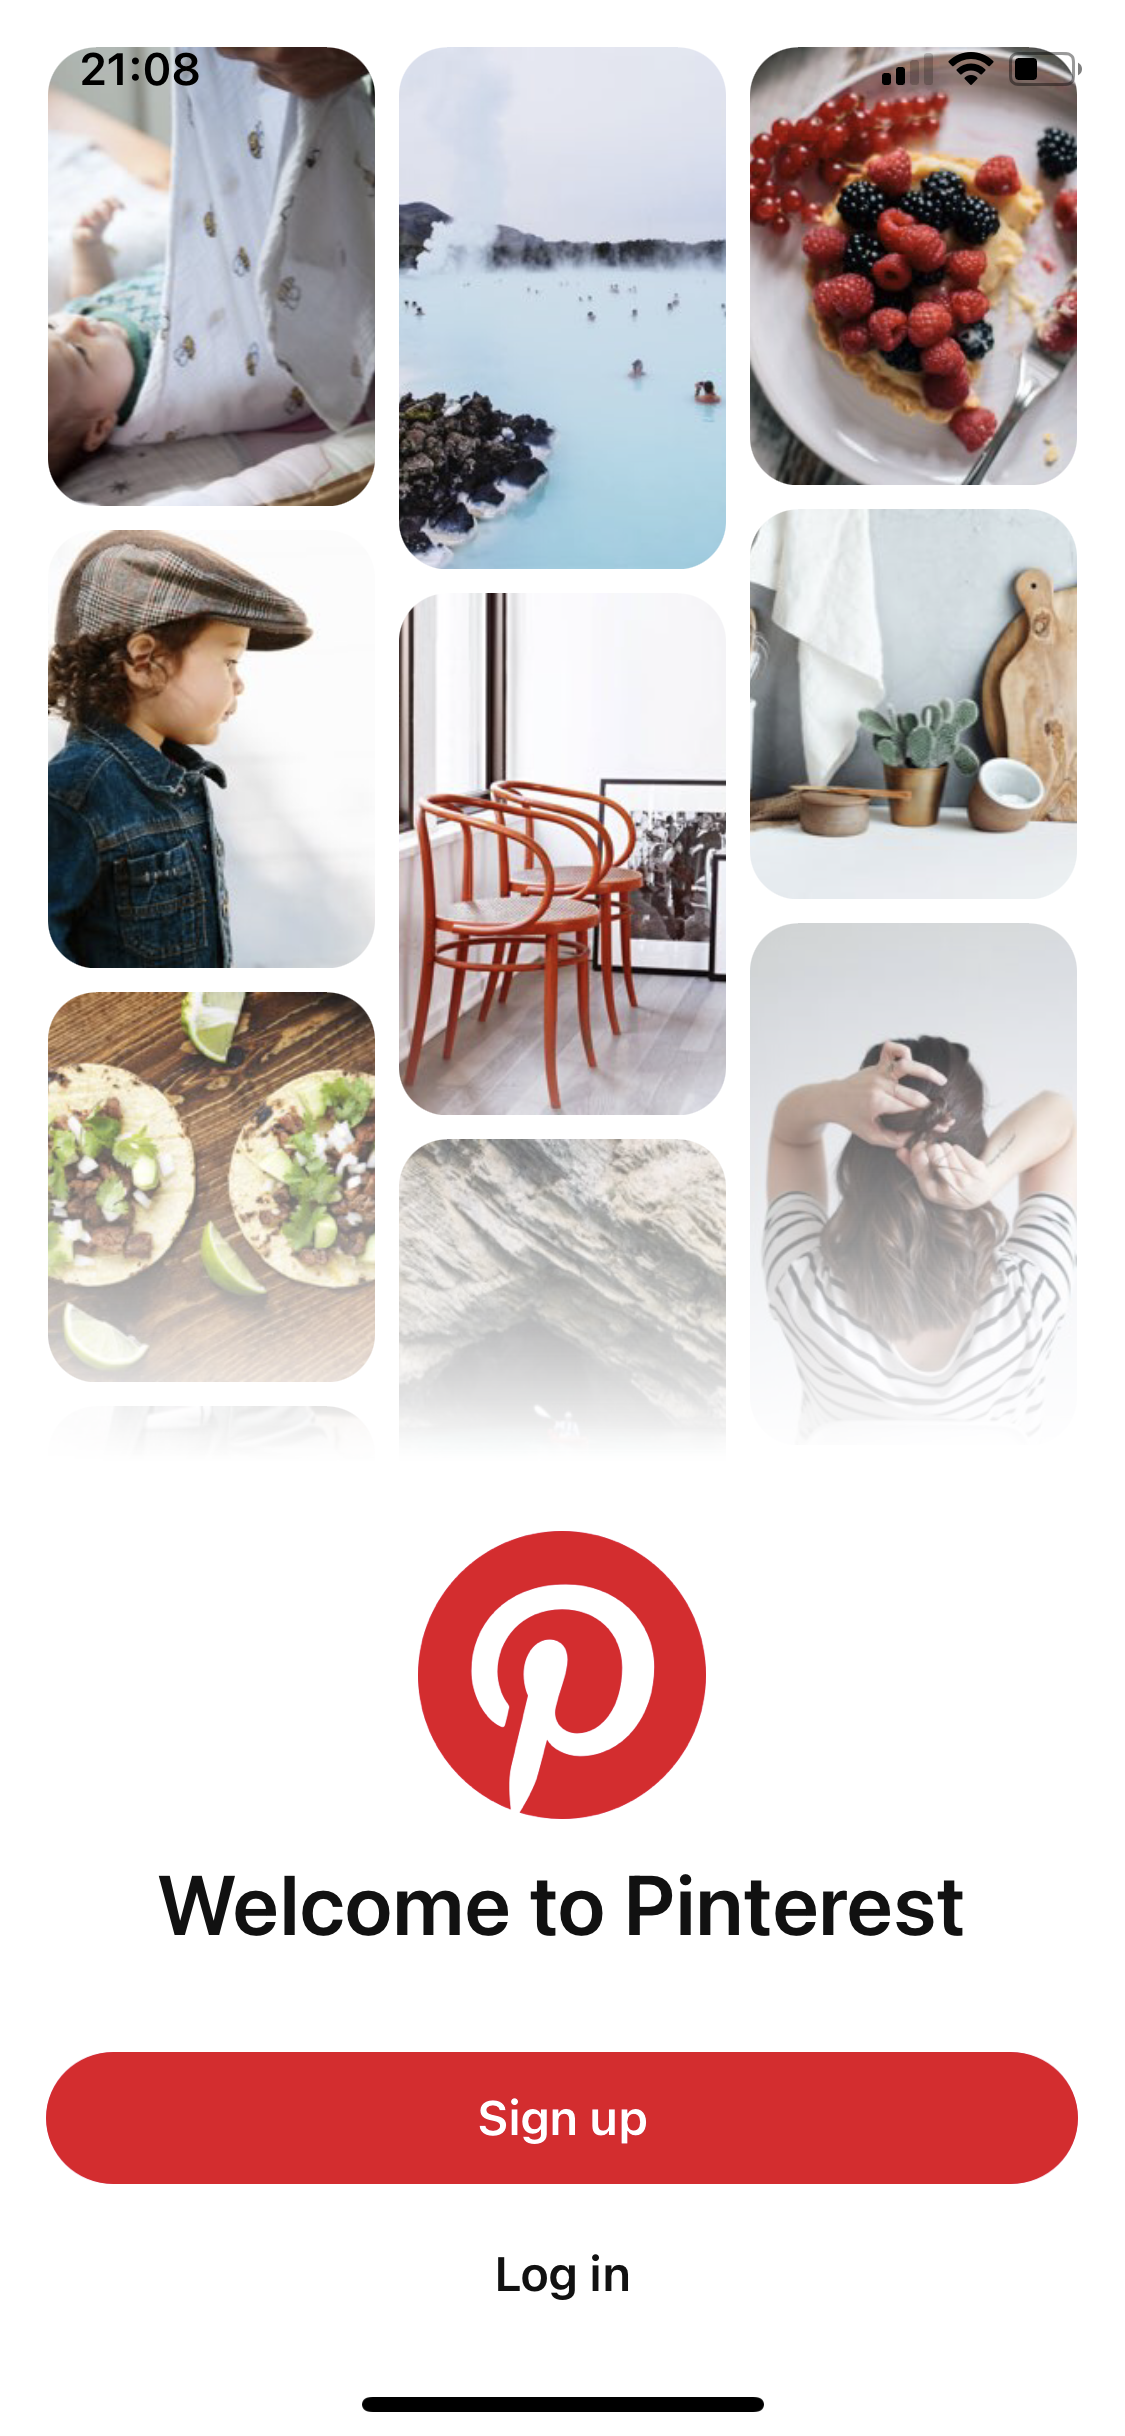 Welcome to Pinterest screenshot